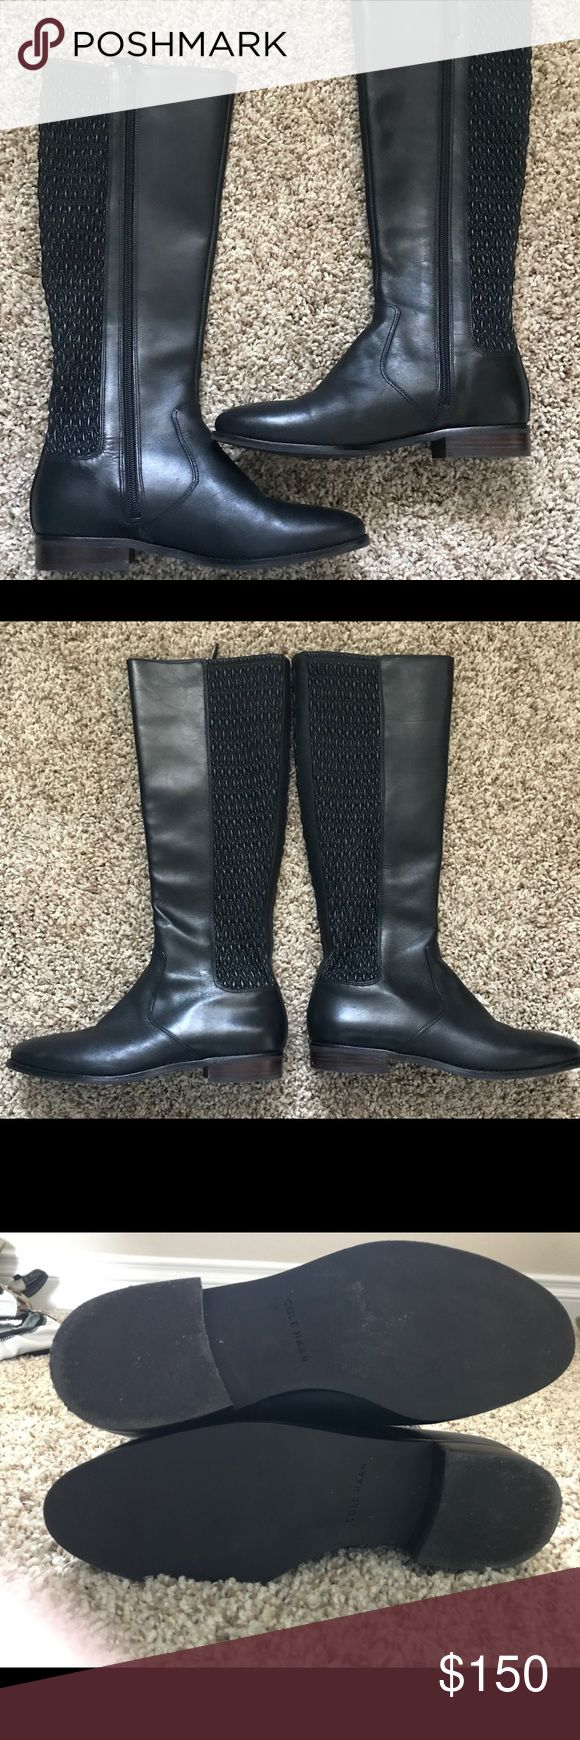 New Women's COLE HANN black leather boots size 7.5 New women's Rockland COLE HANN black leather boots SIZE 7.5 Floor display. Cole Haan Shoes Heeled Boots